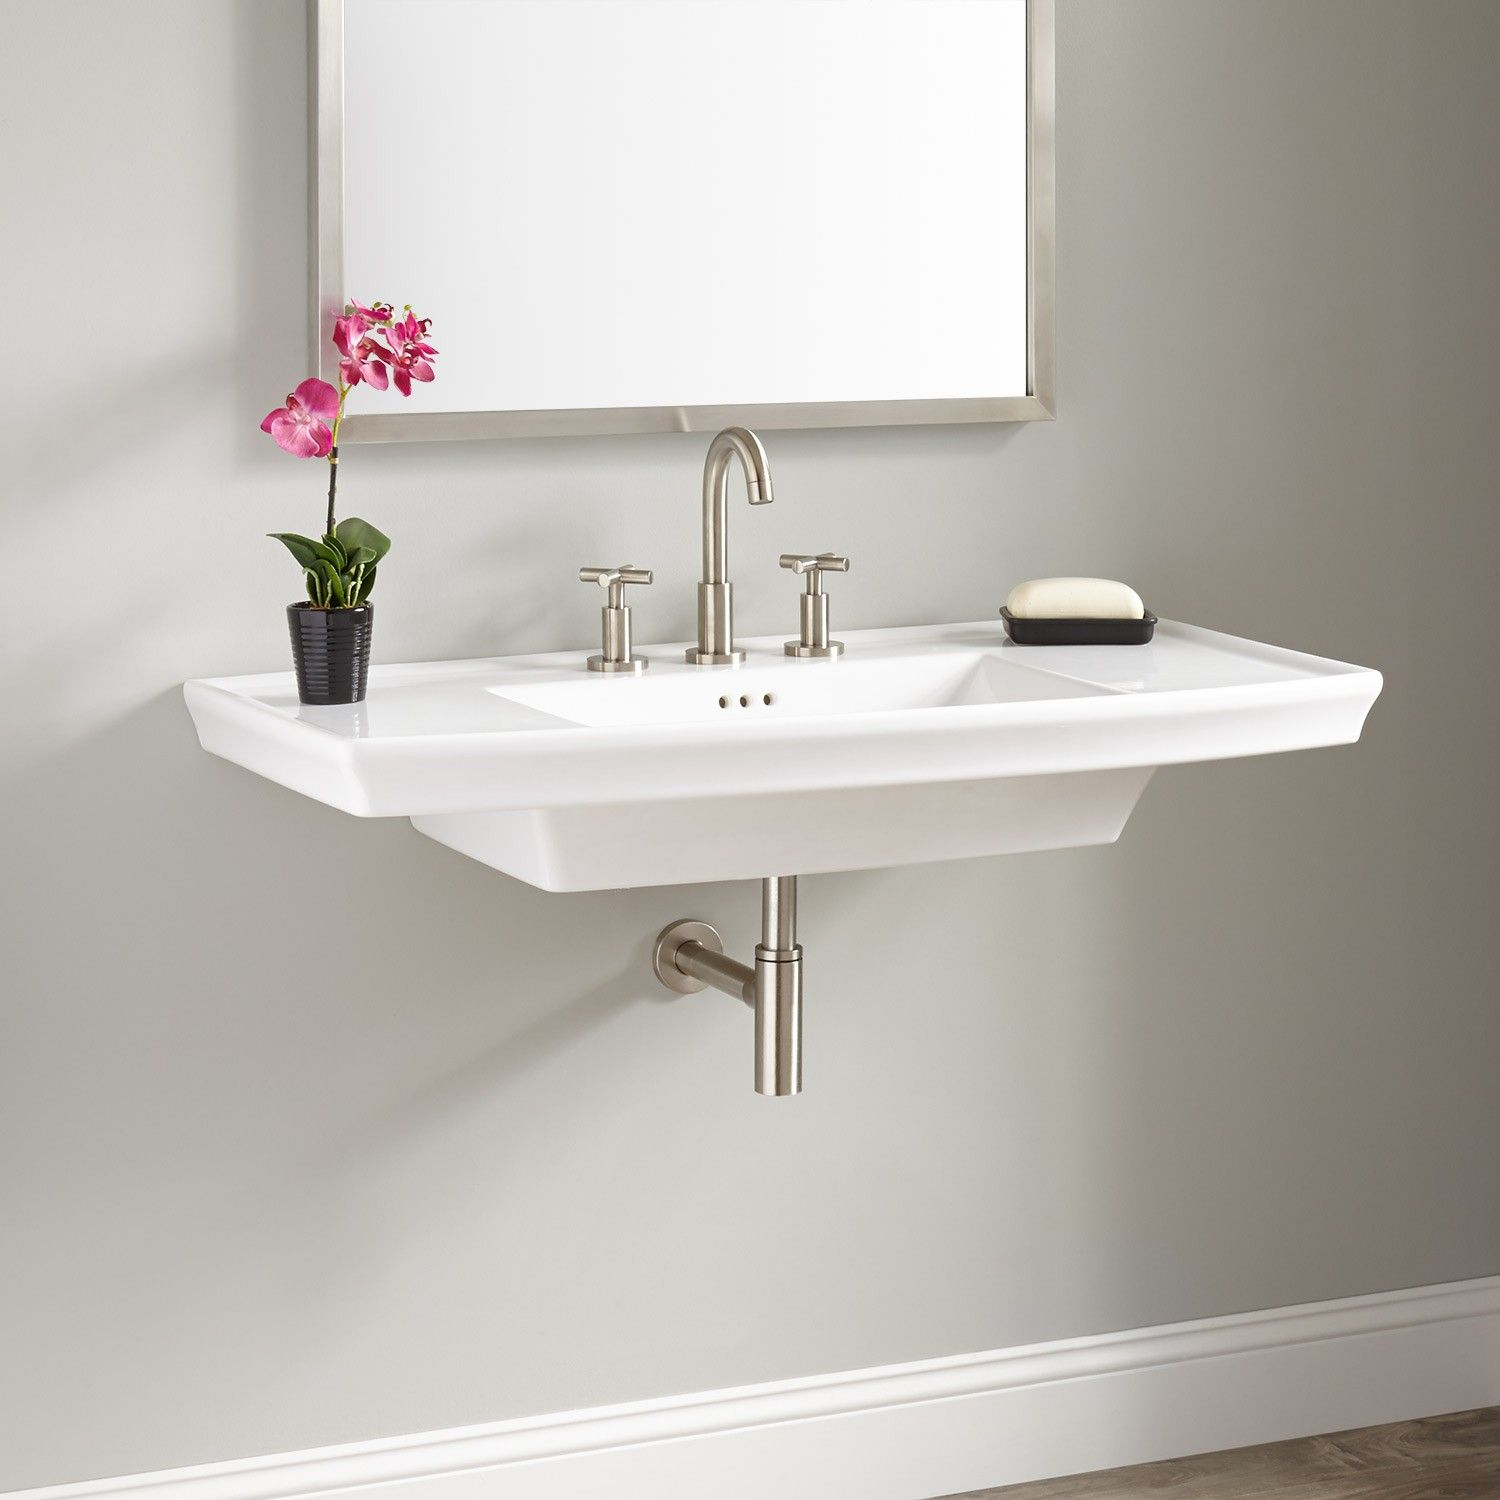 Olney Porcelain Wall Mount Sink Wall Mount Sinks Bathroom Sinks Bathroom Wall Mounted Sink Wall Mounted Bathroom Sinks Wall Mount Sinks